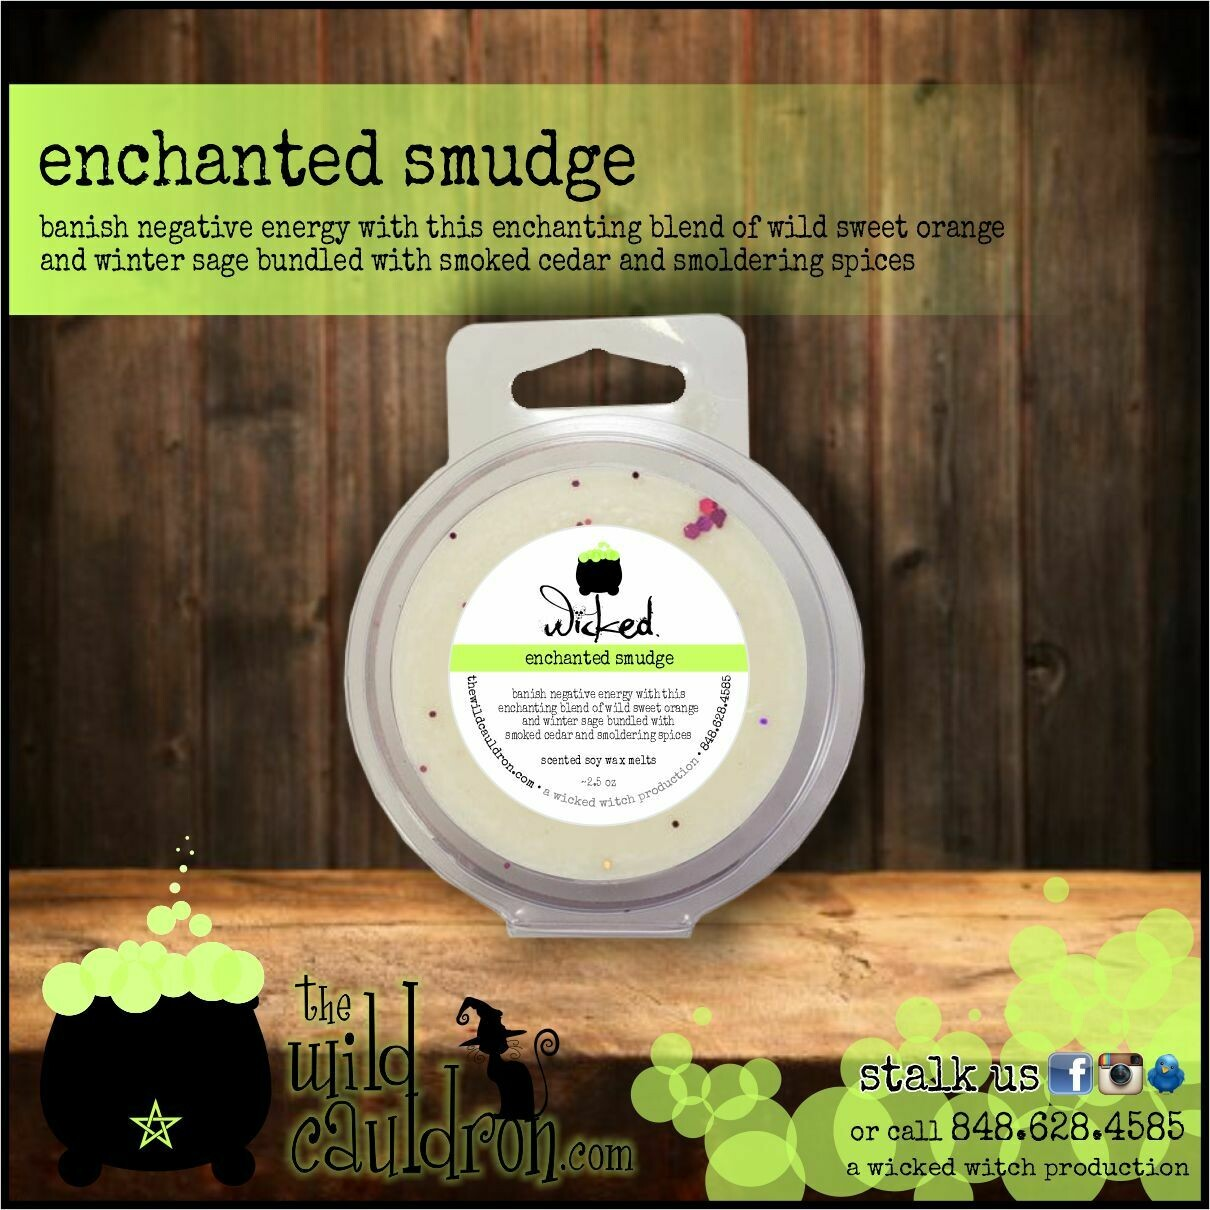 Enchanted Smudge Wicked Wax Melt